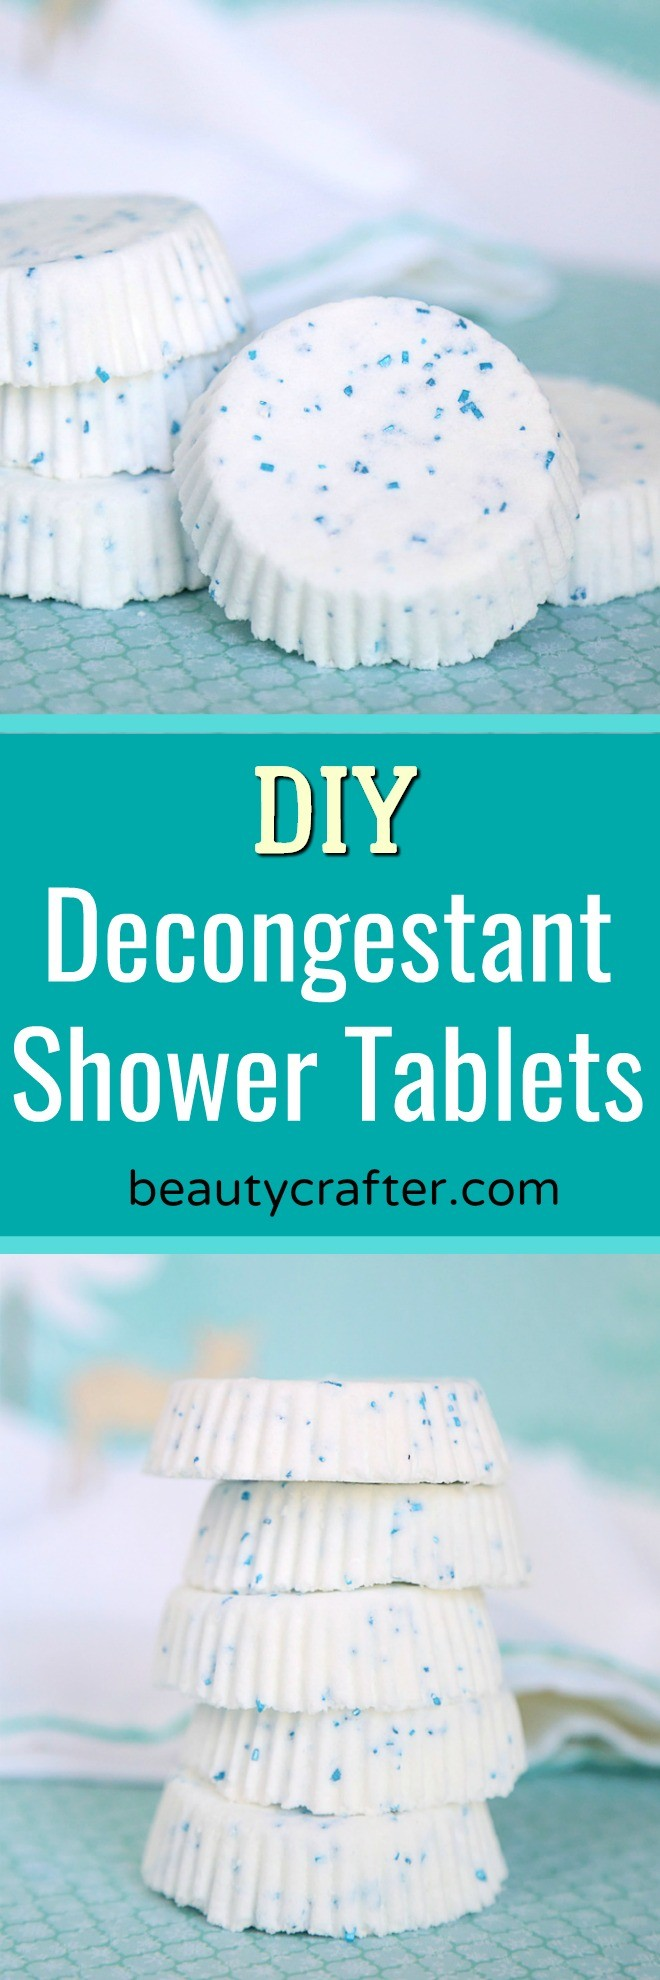 DIY Decongestant Shower Tablets - natural remedy for nasal and sinus congestion. #showertablet #health #diy #essentialoils #naturalhealth